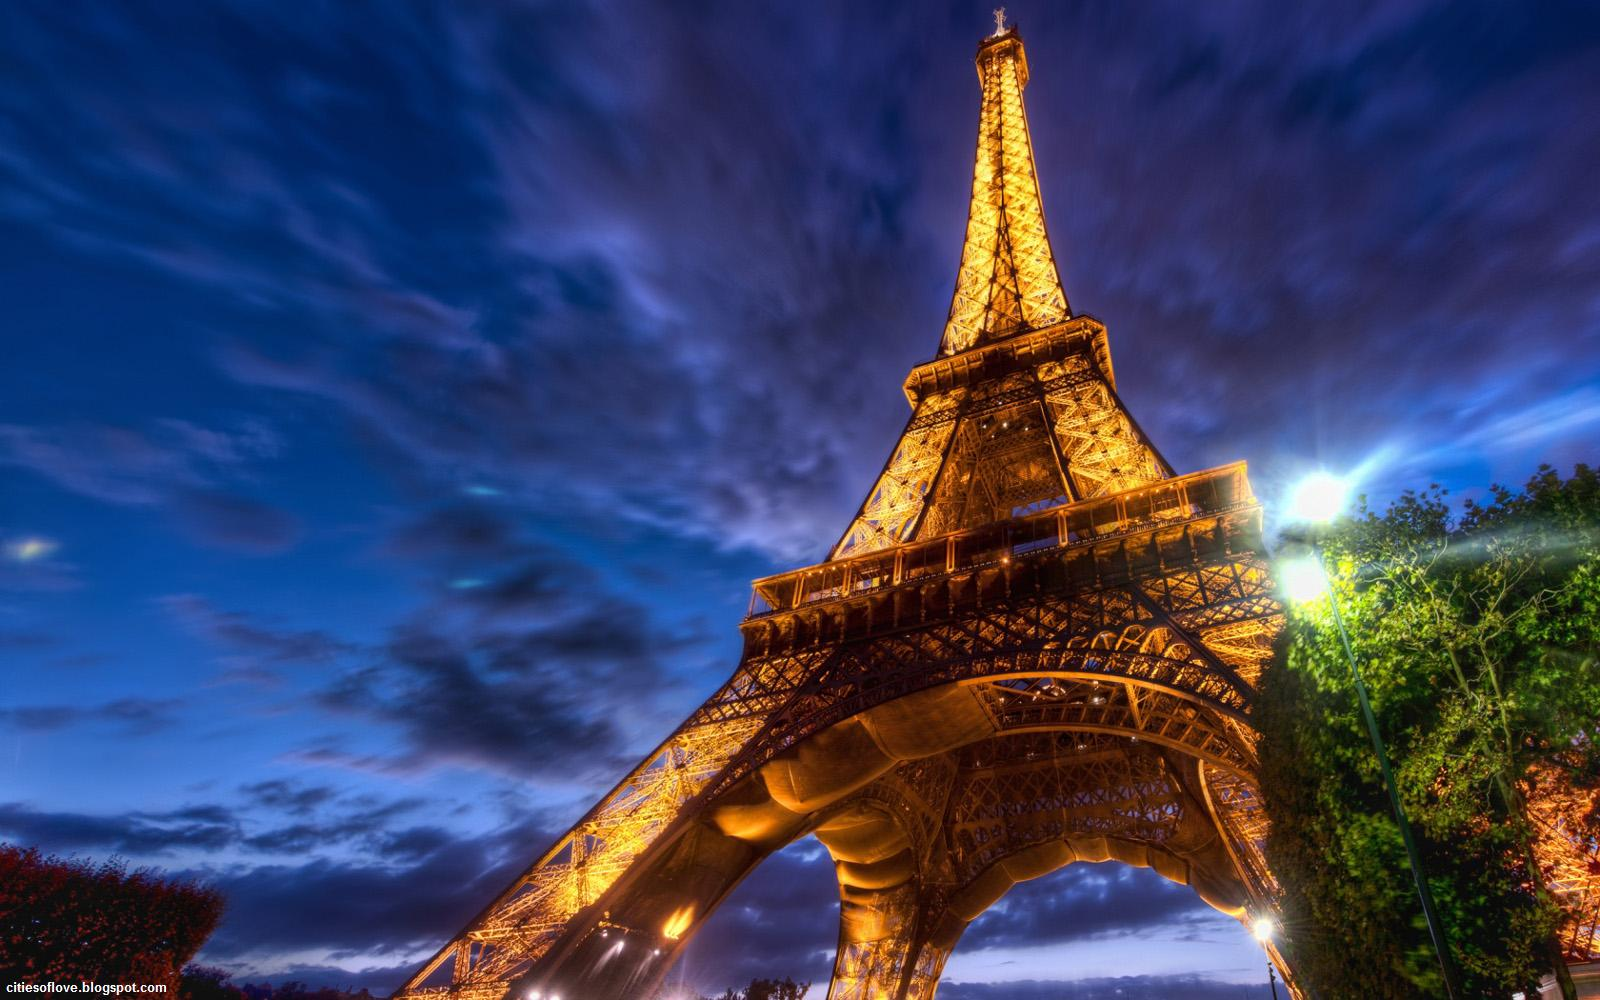 Paris Eiffel Tower At Night The Beautiful French Iron Lady France Hd Desktop Wallpaper